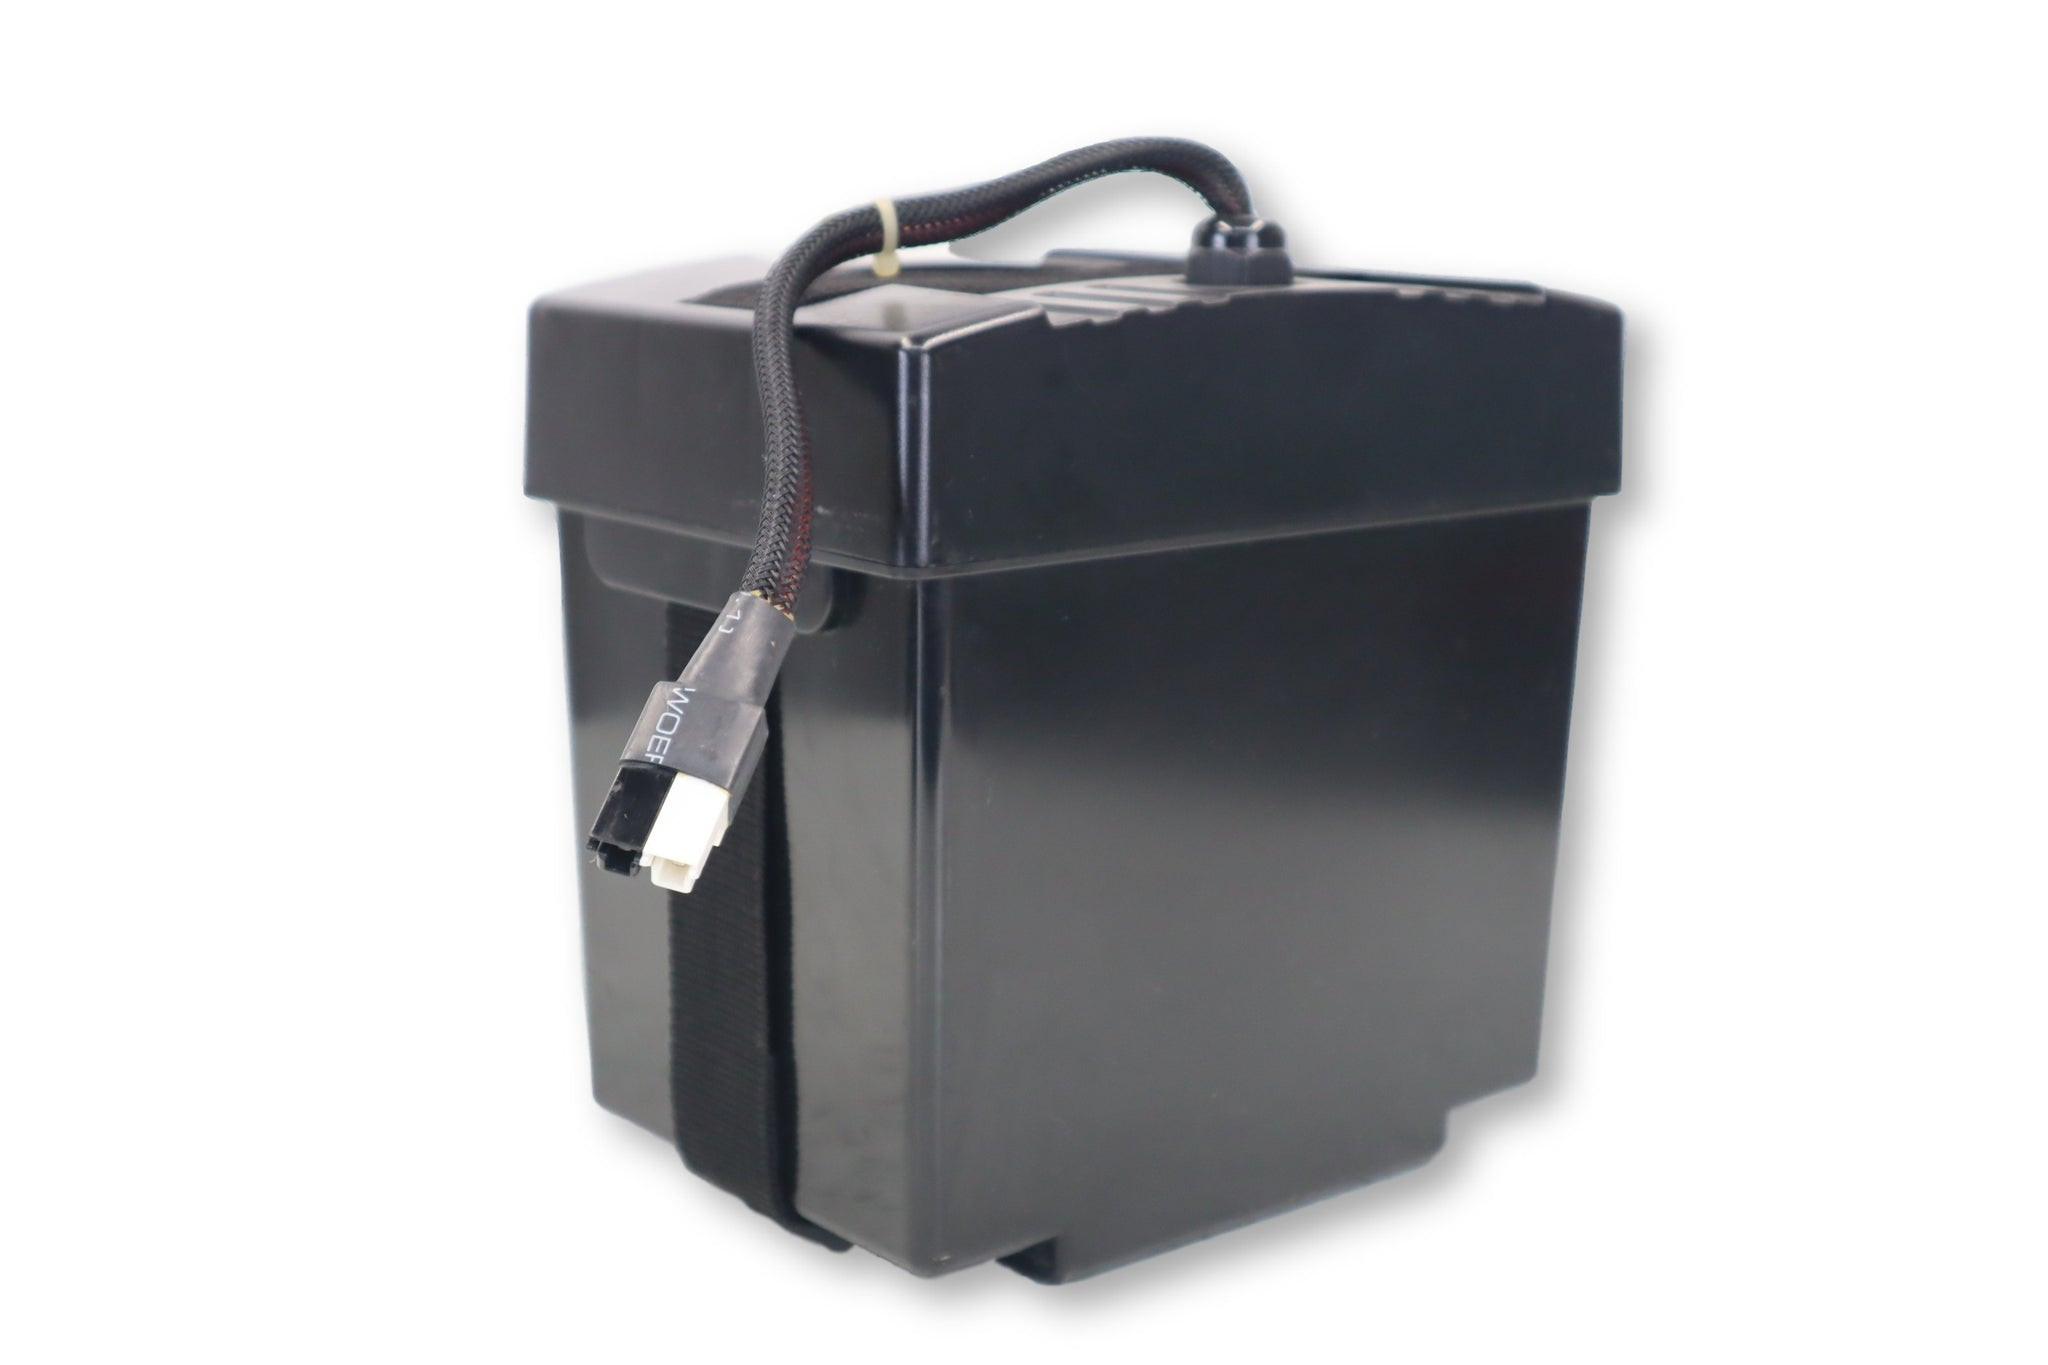 Battery Box for Jet 7 Electric Wheelchairs | 35AH Sealed Lead Acid (SLA) or GEL Battery Box | Pride Mobility Products